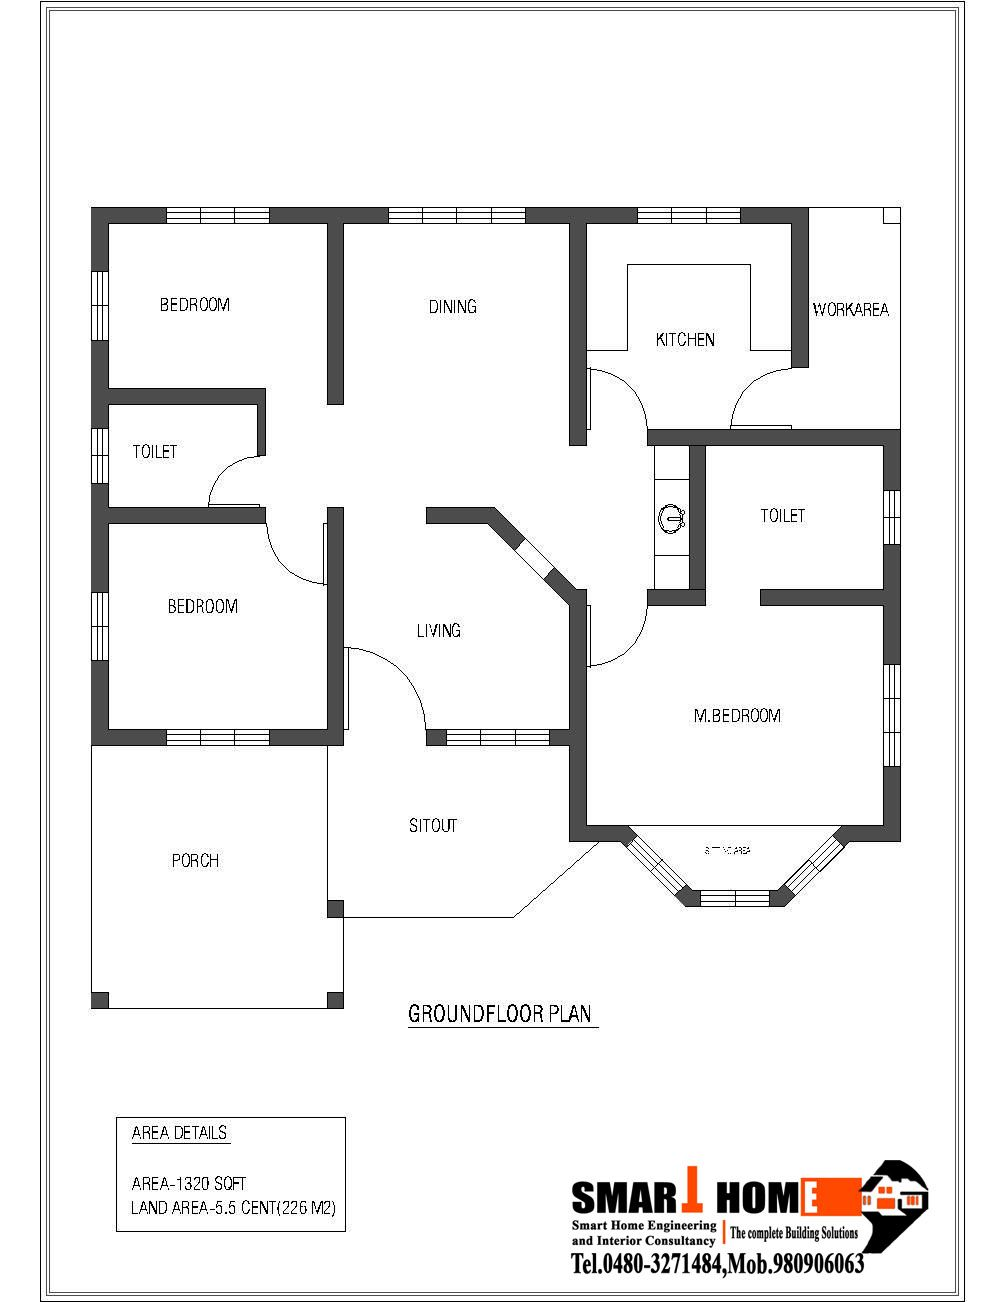 1320 sqft kerala style 3 bedroom house plan from smart Free house floor plan designer